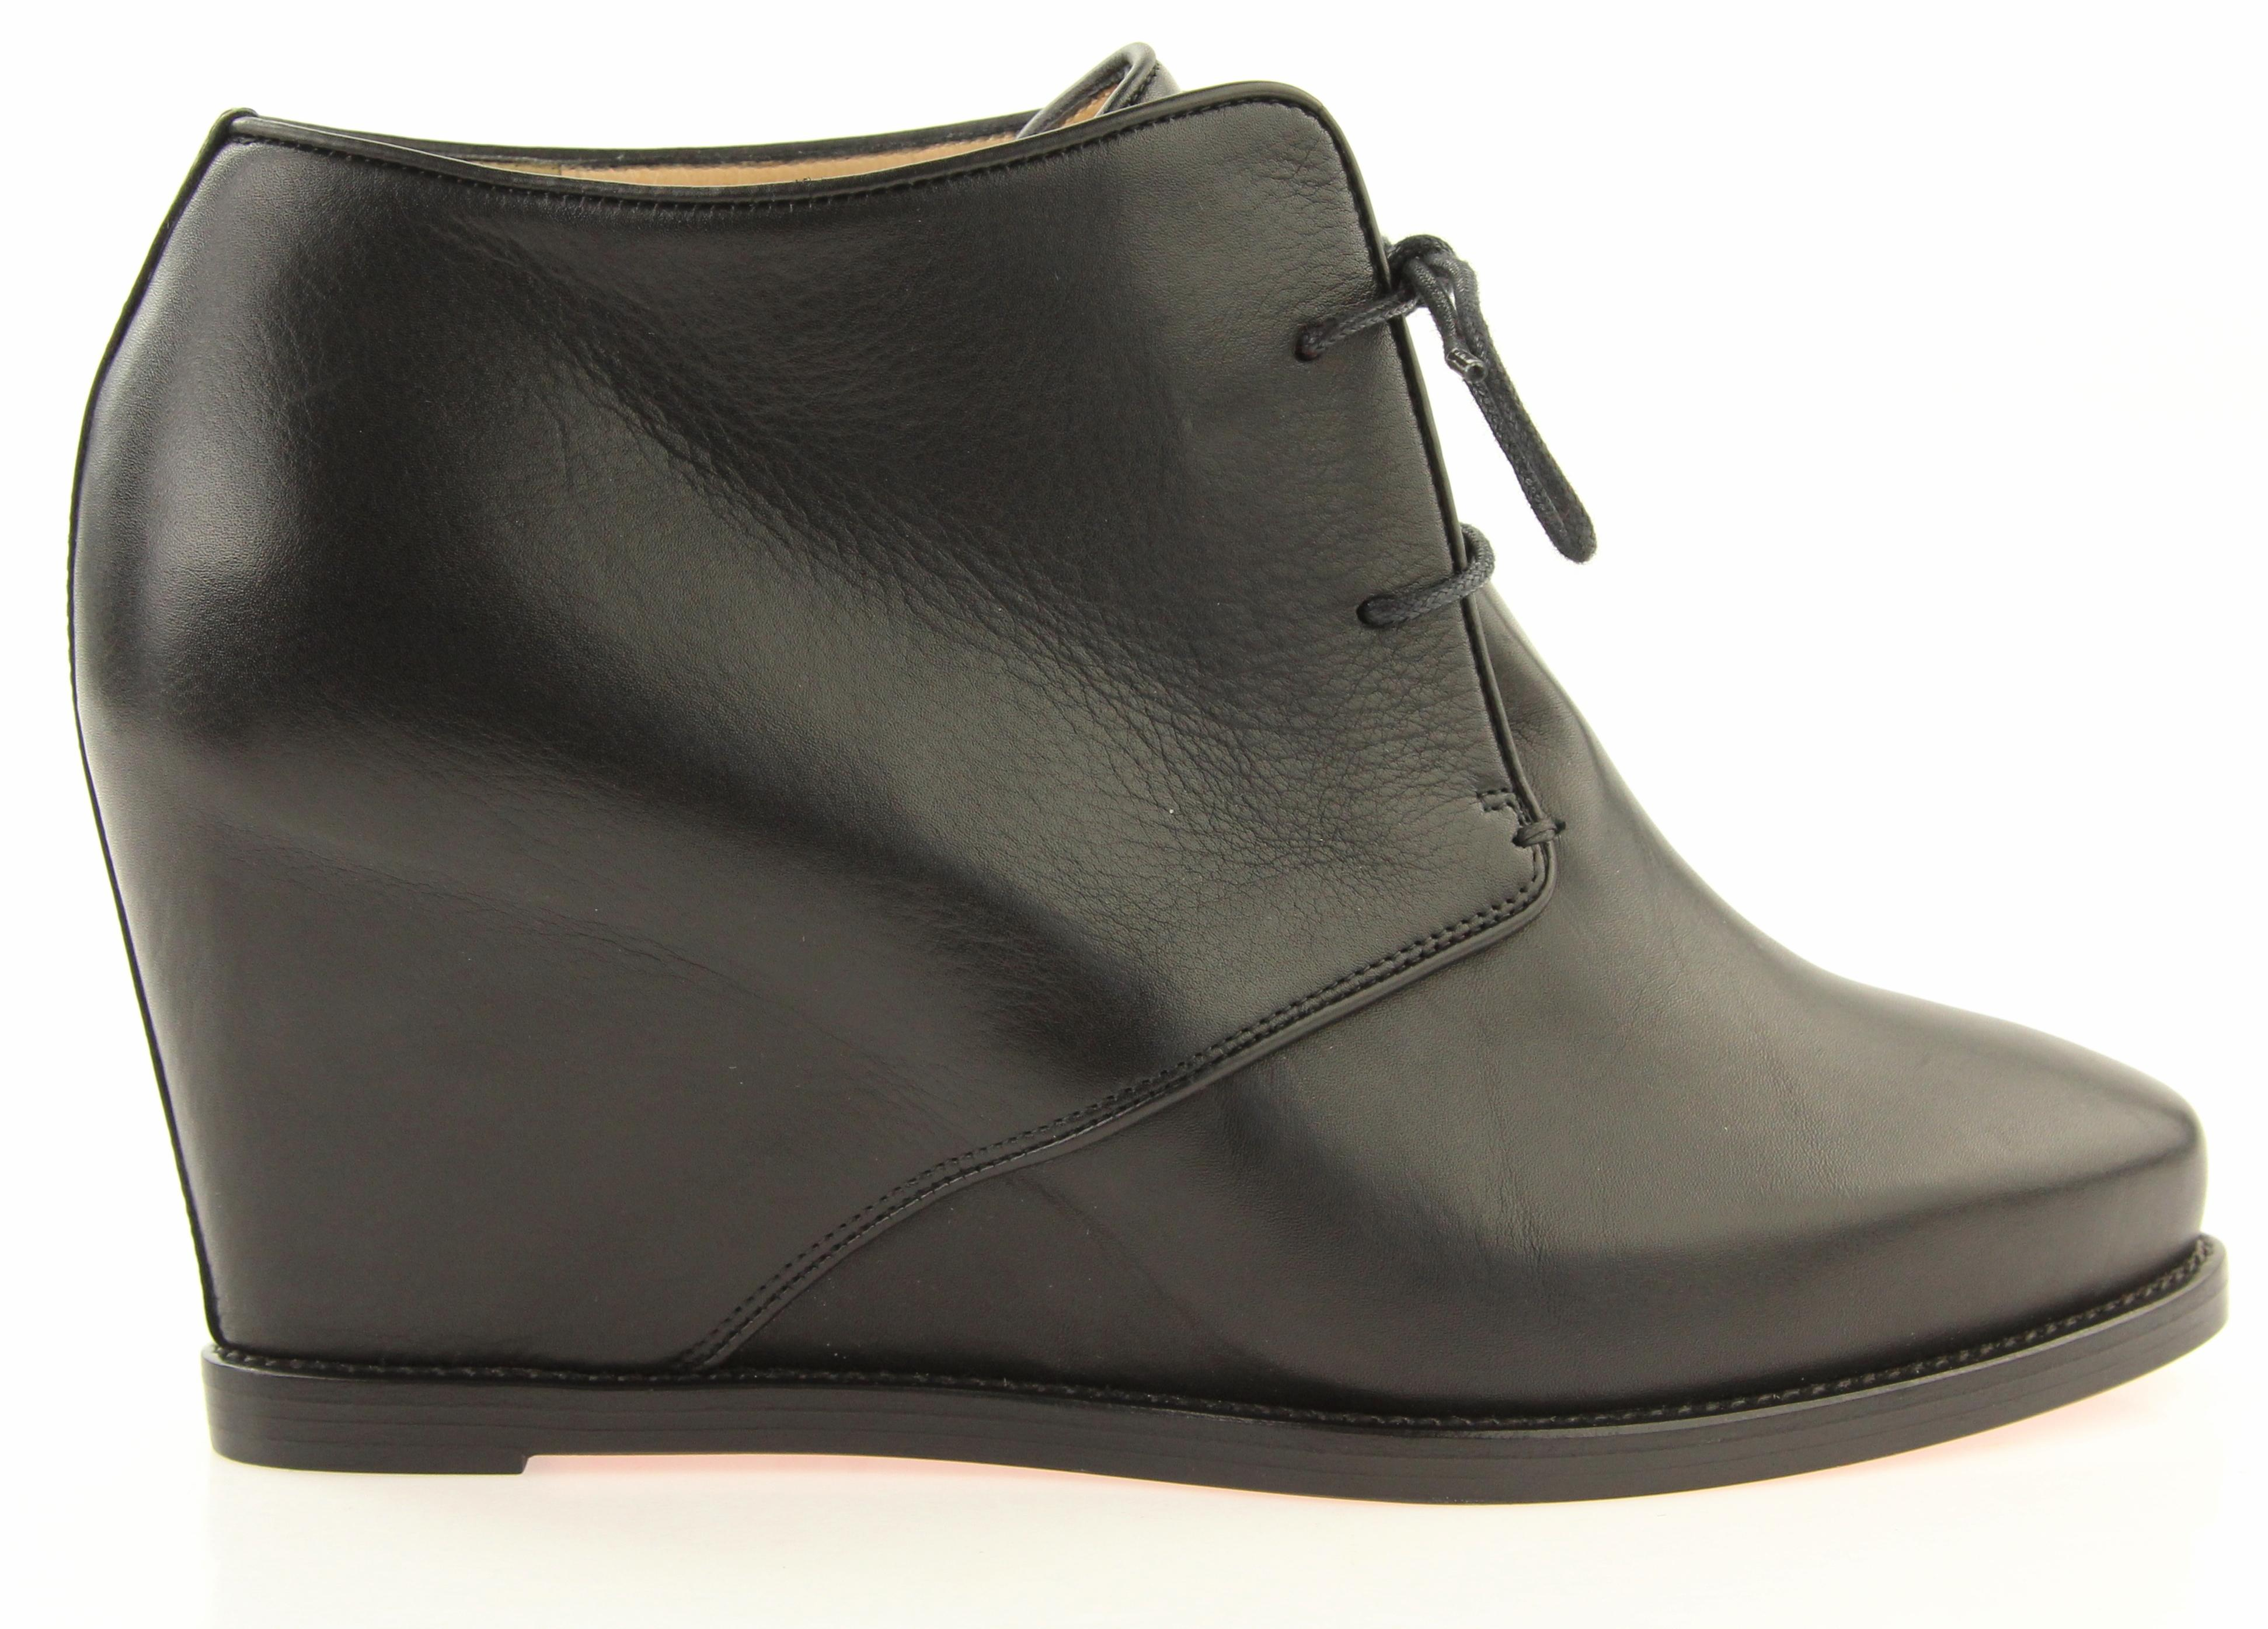 Christian Louboutin Black Lady Schuss Leather Boots/Booties Size EU 38.5 (Approx. US 8.5) Regular (M, B)